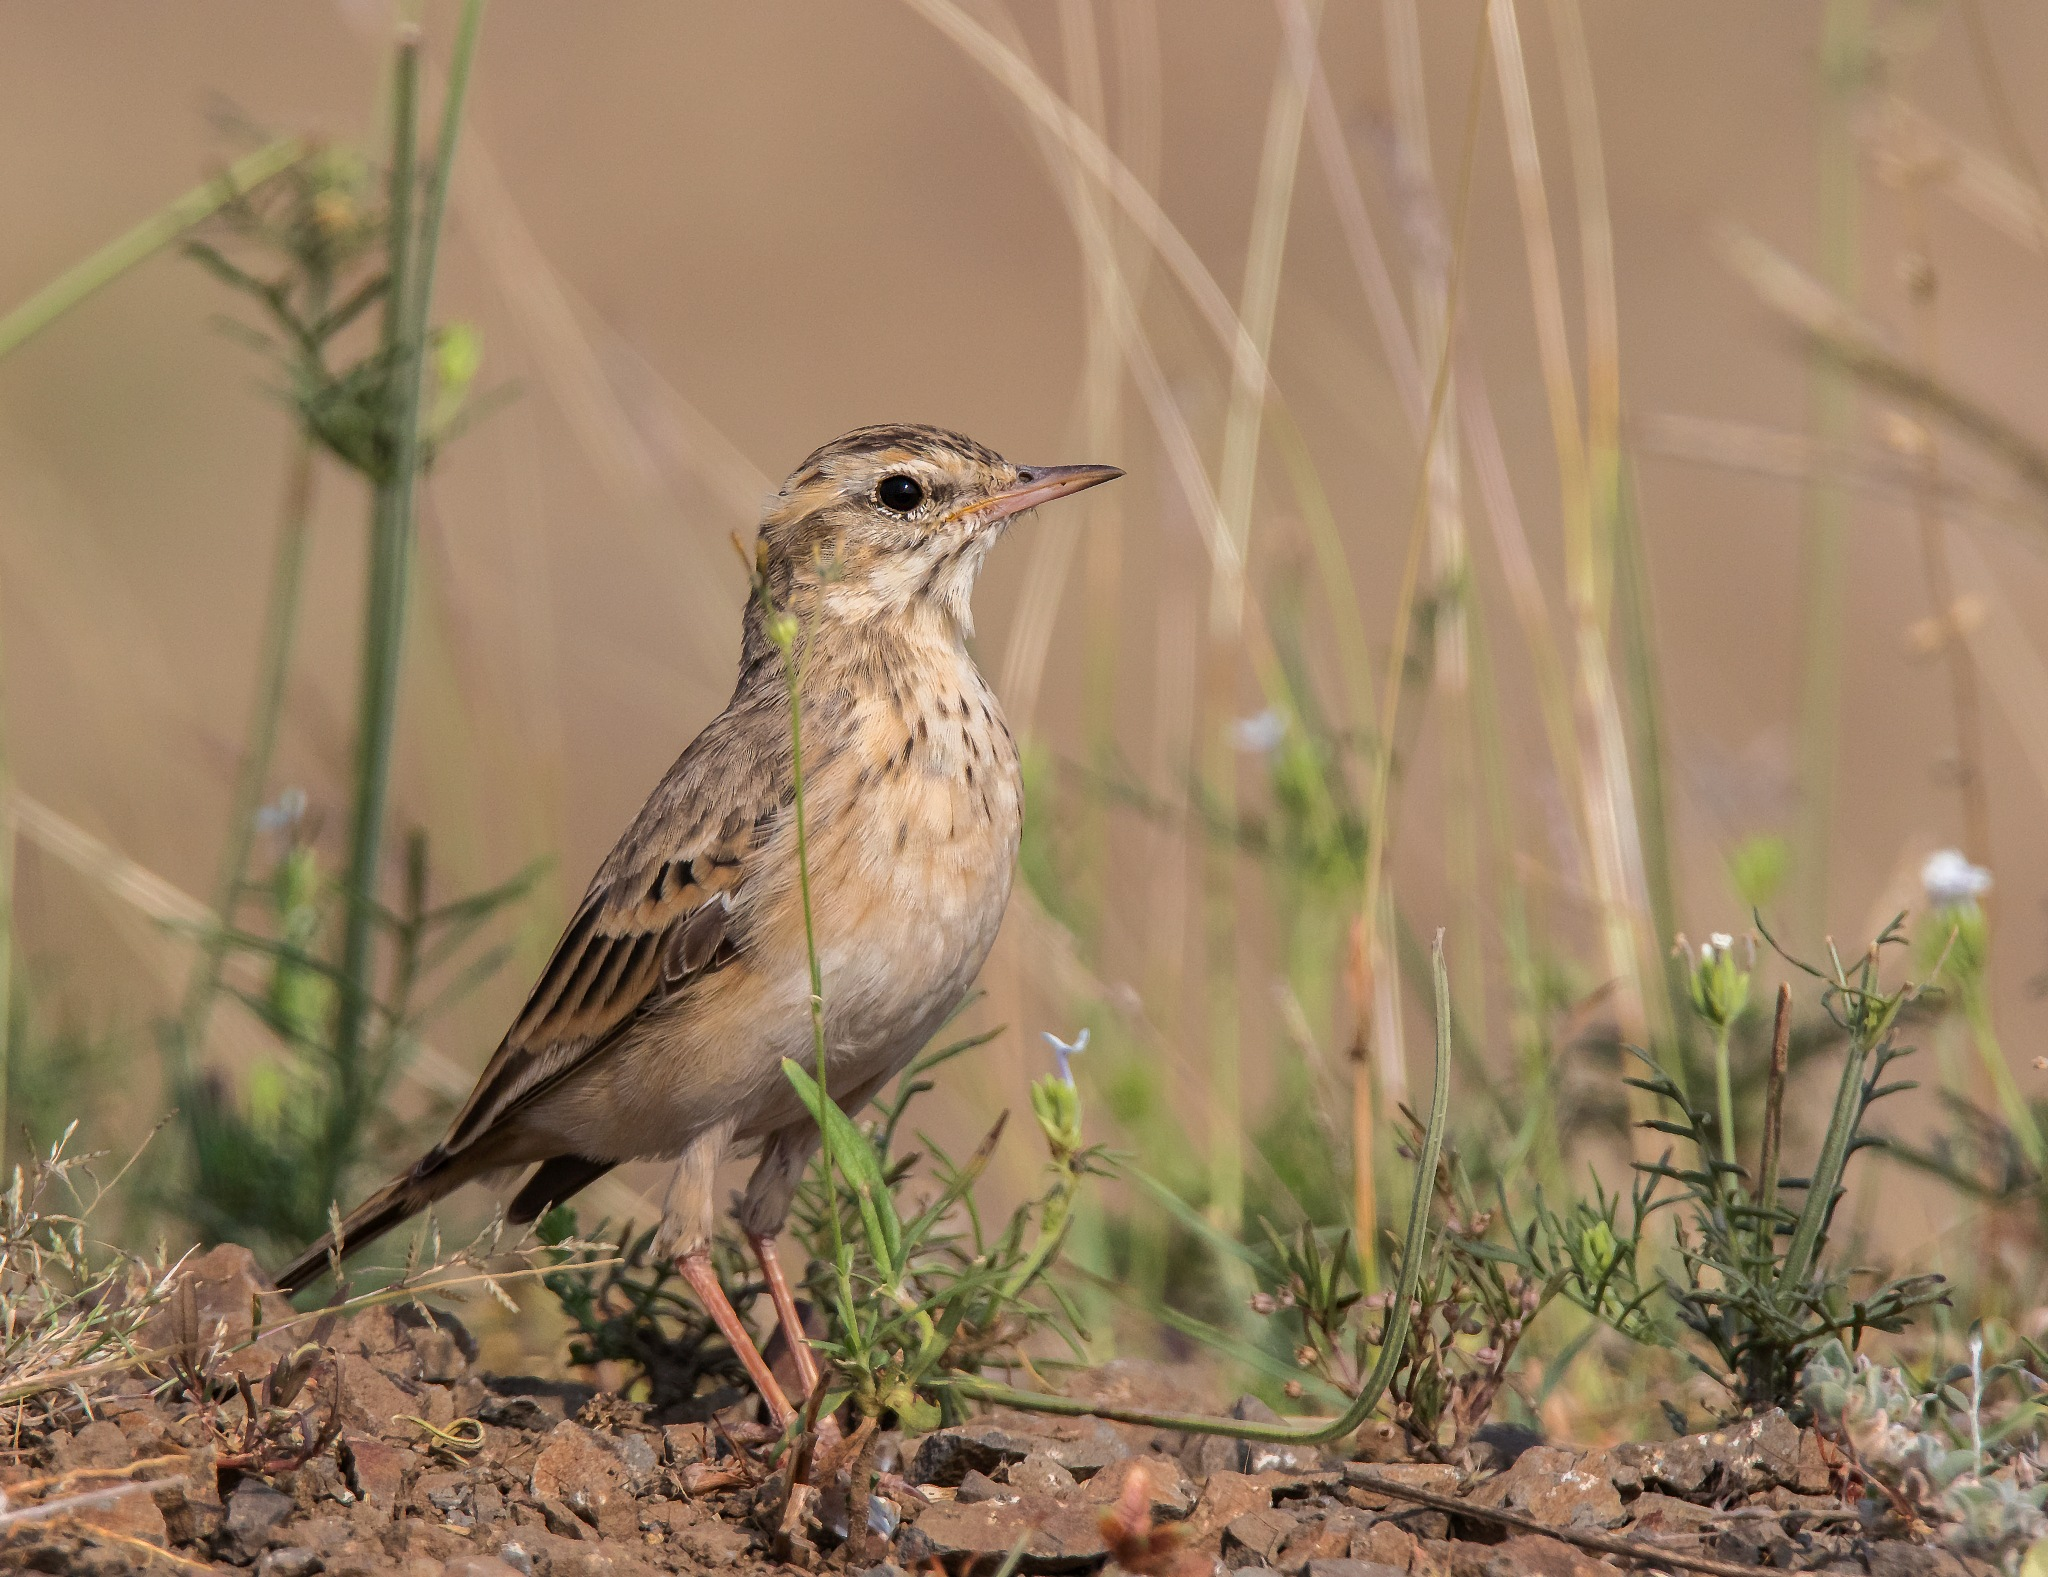 Pipit by DrSudhir Hasamnis